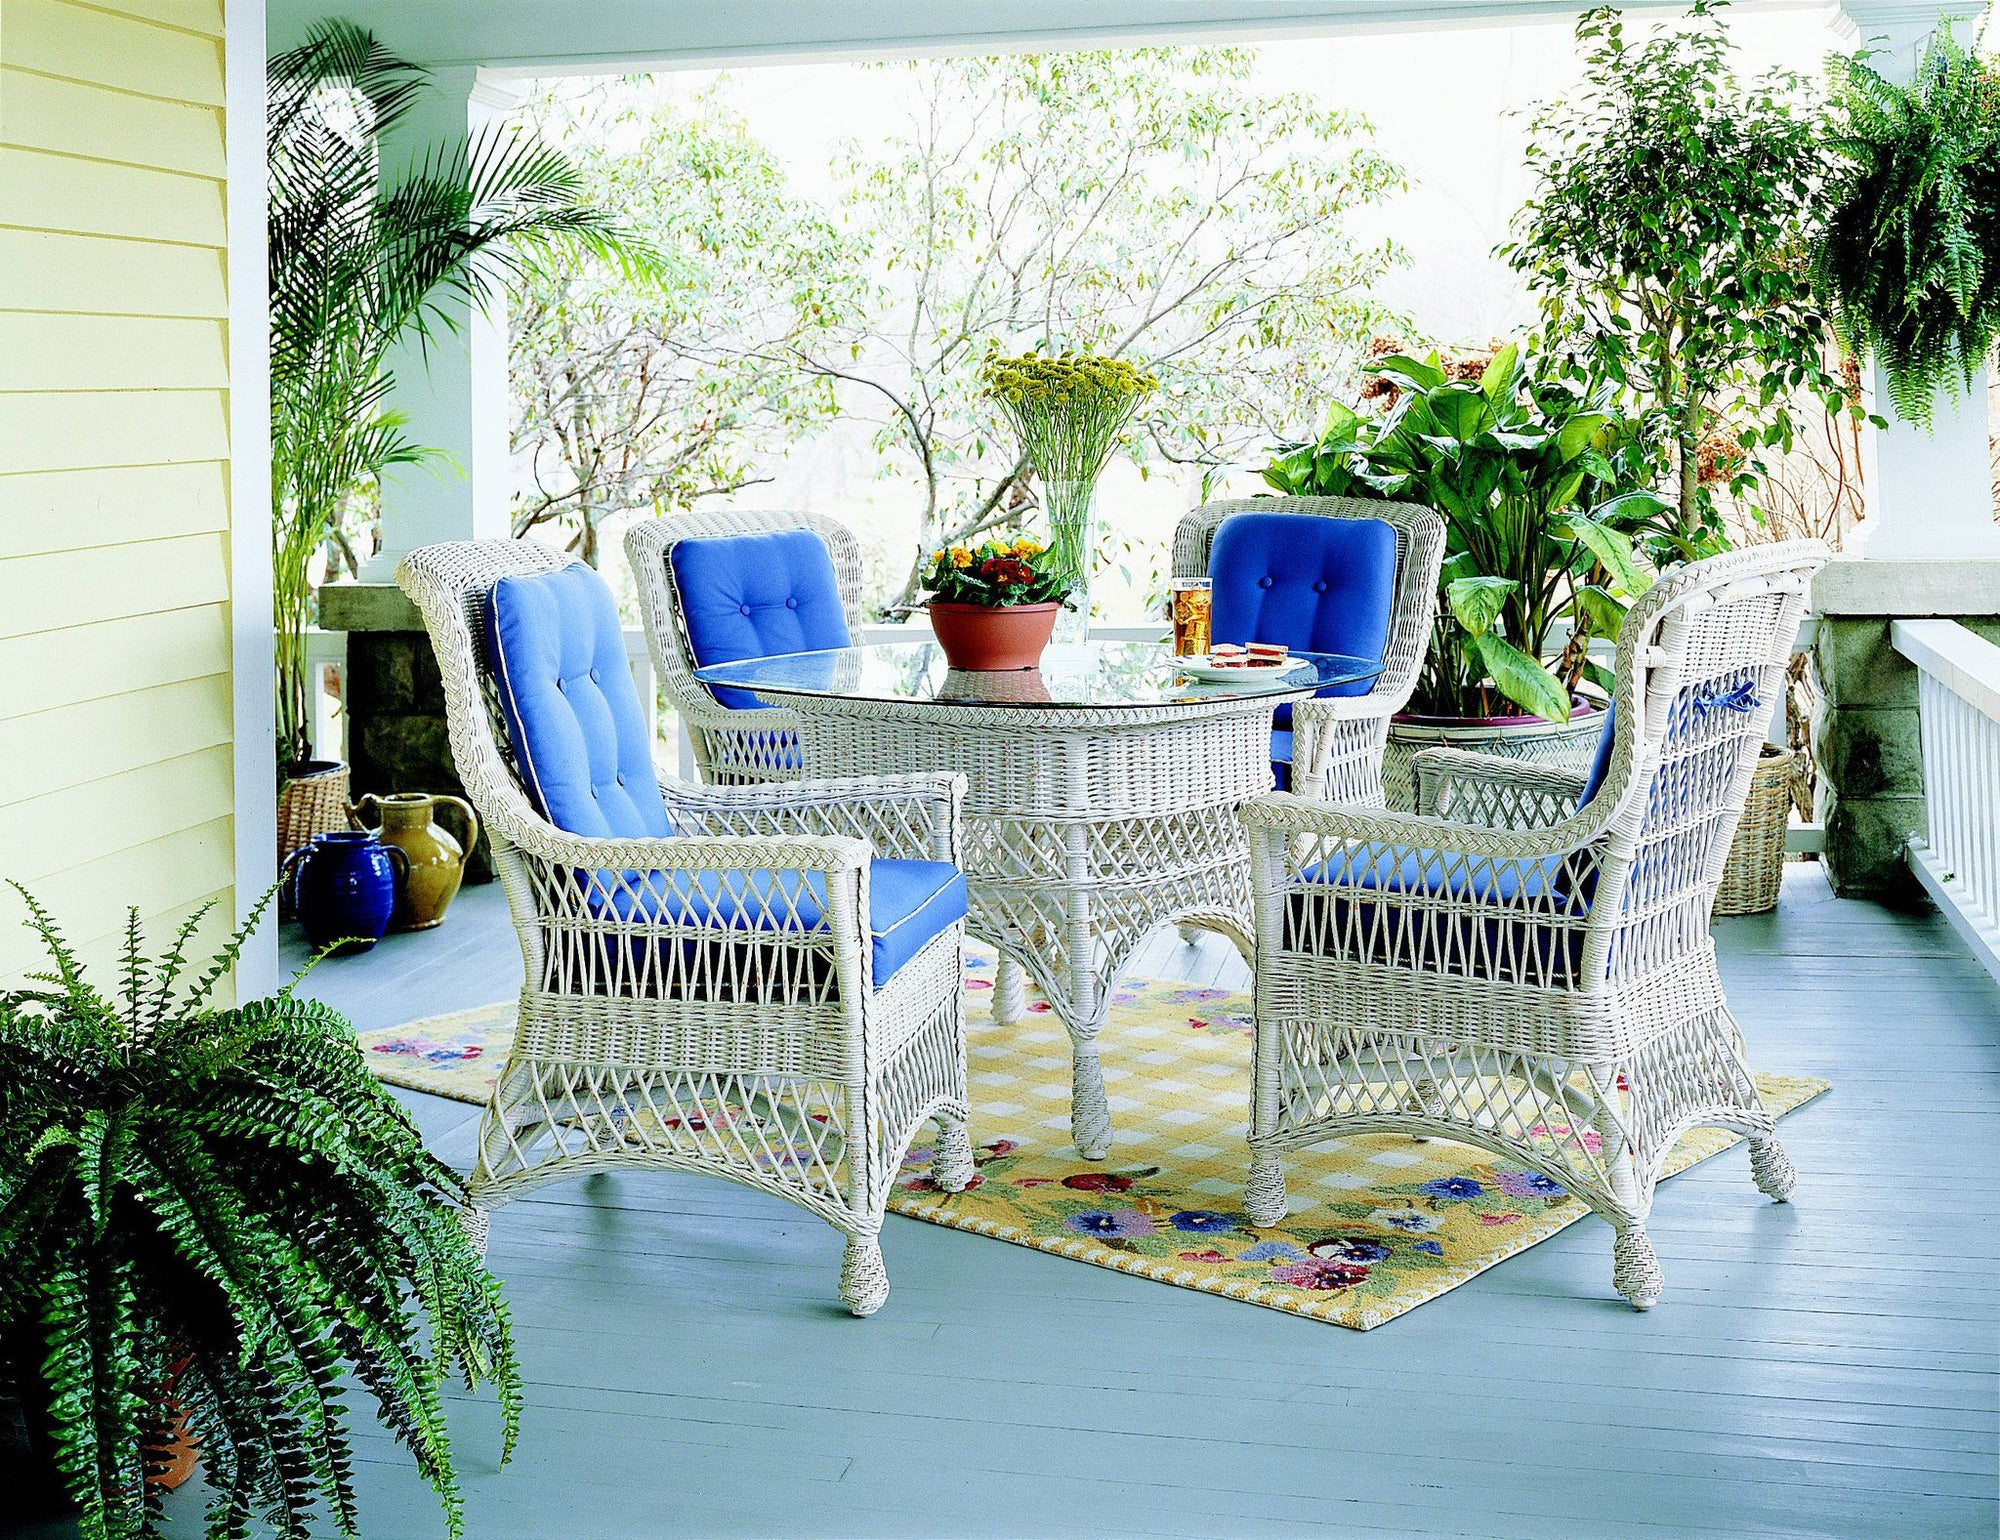 Designer Wicker & Rattan By Tribor Rockport 5 Piece Wicker Dining Set With Glass Top by Designer Wicker & Rattan by Tribor Dining Set - Rattan Imports